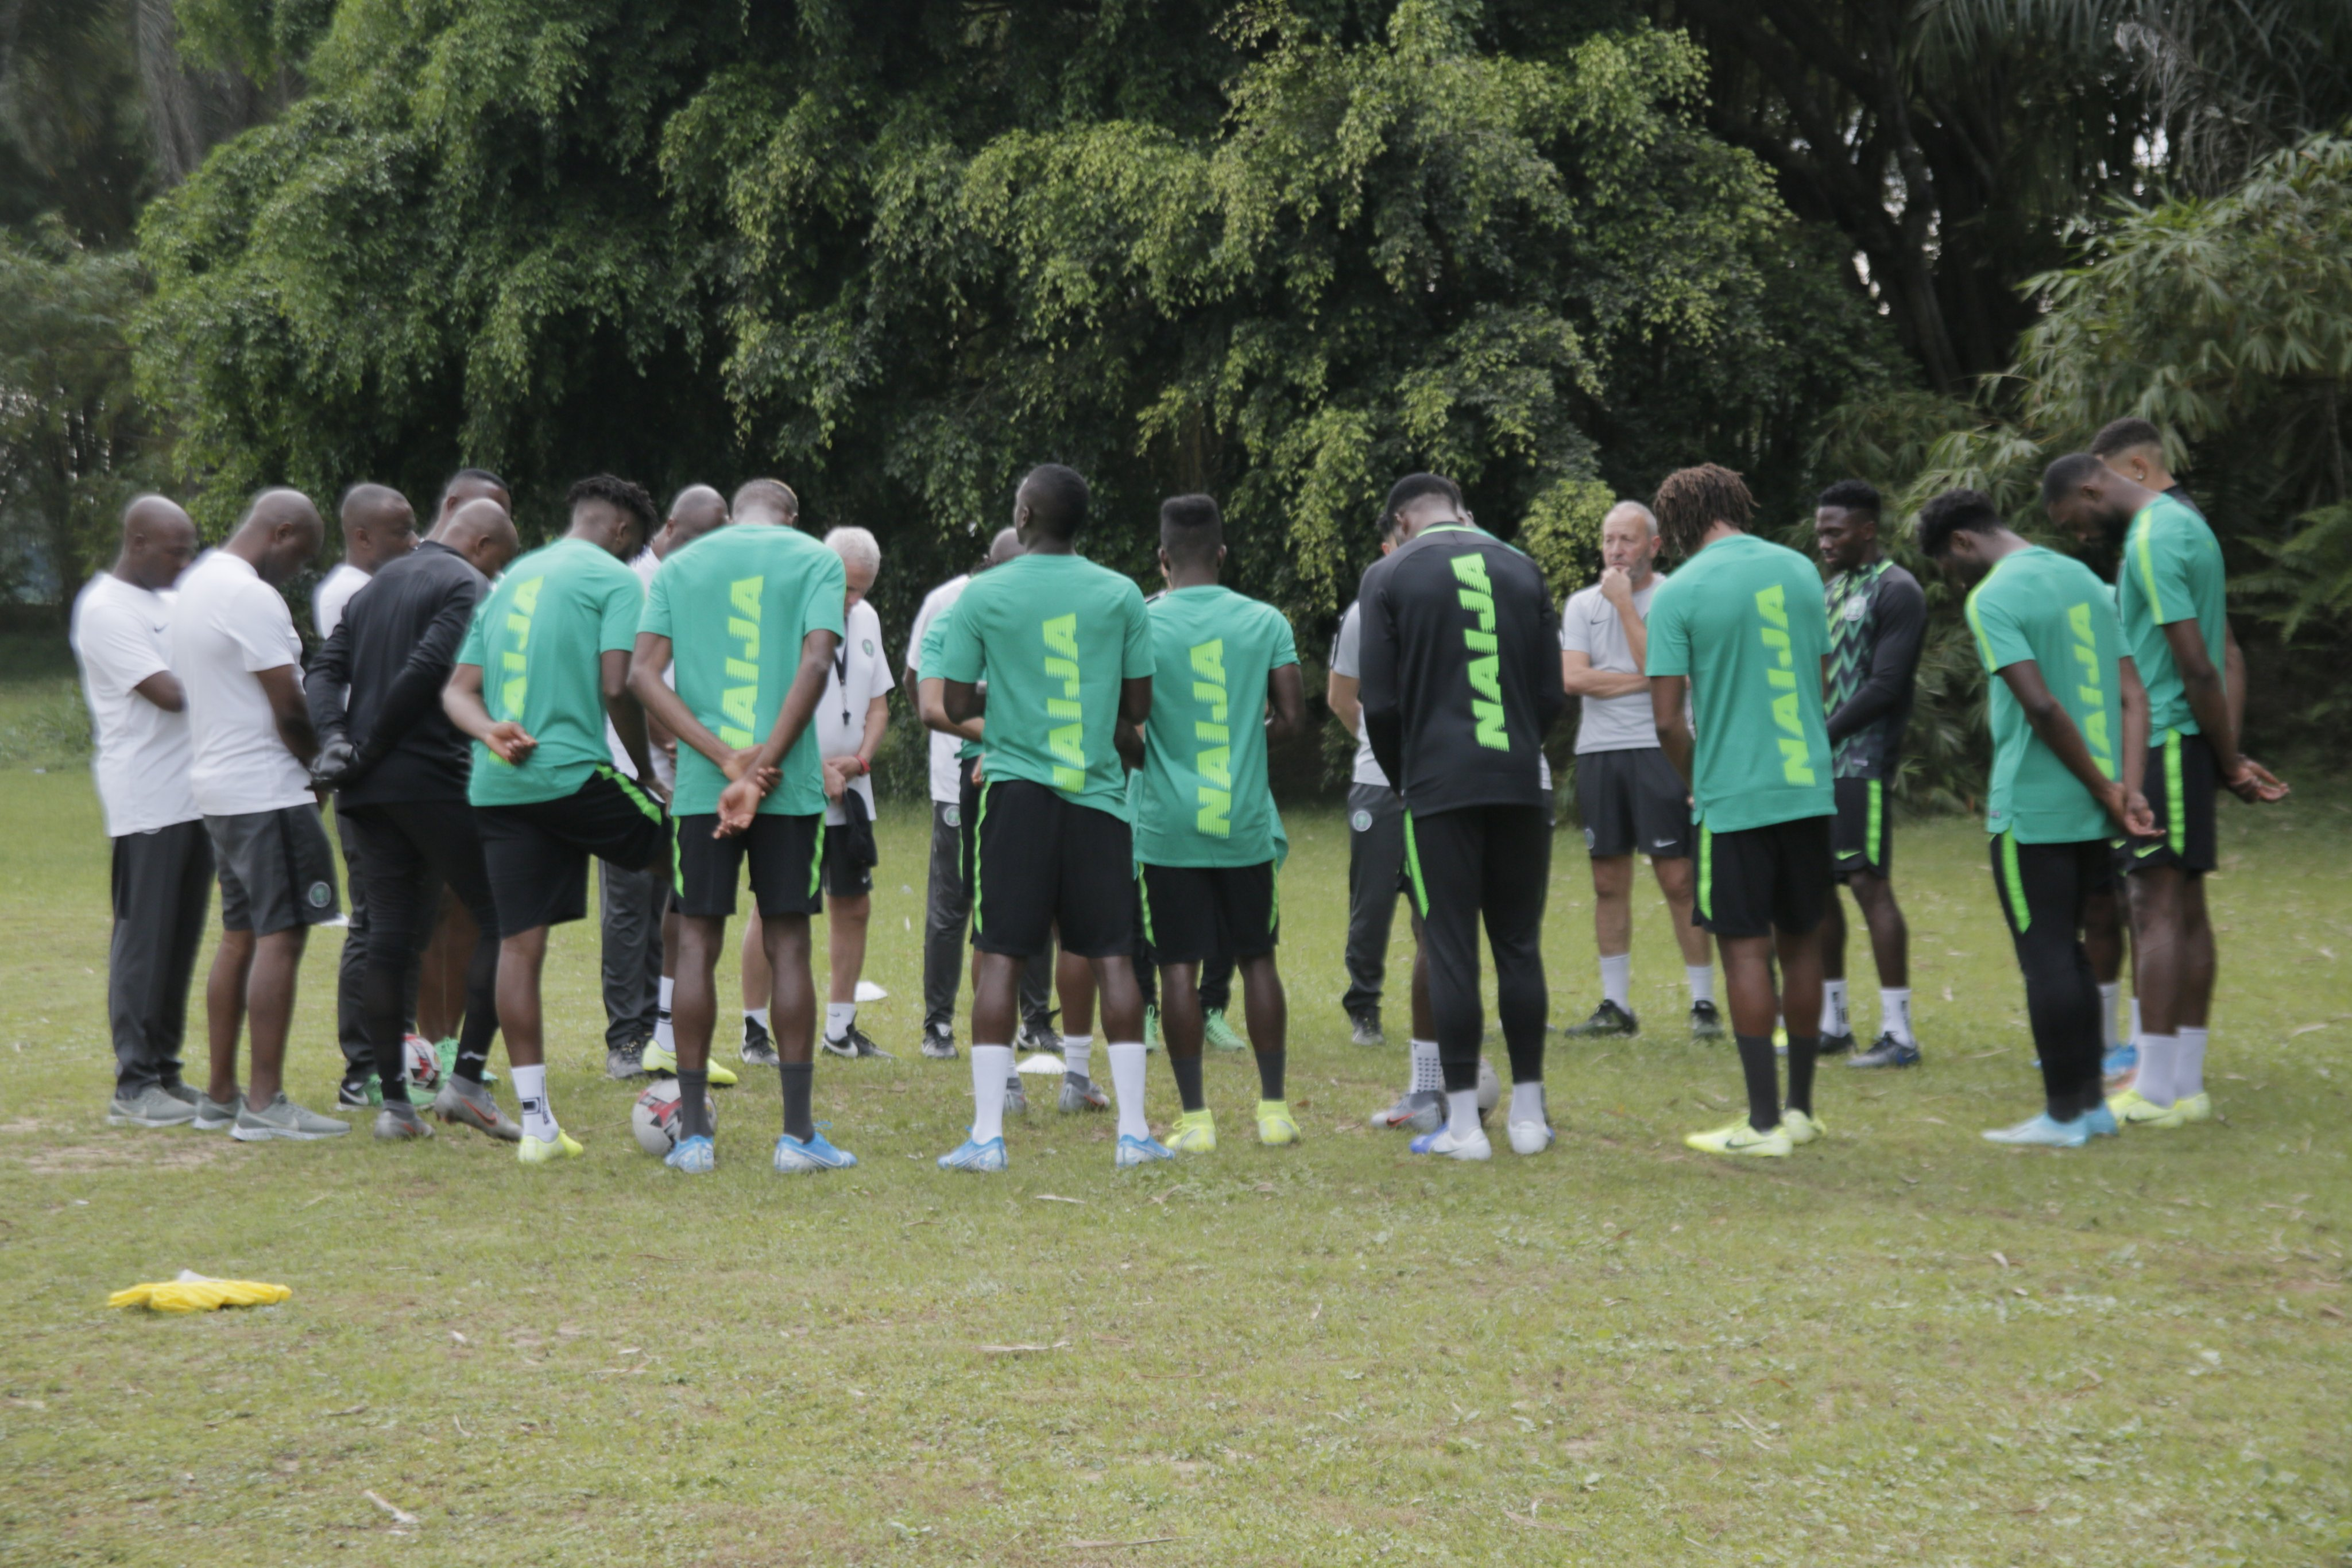 2022 W/C Qualifiers: Etebo, Omeruo, Uzoho Arrive Lagos, 11 Players Now In Camp